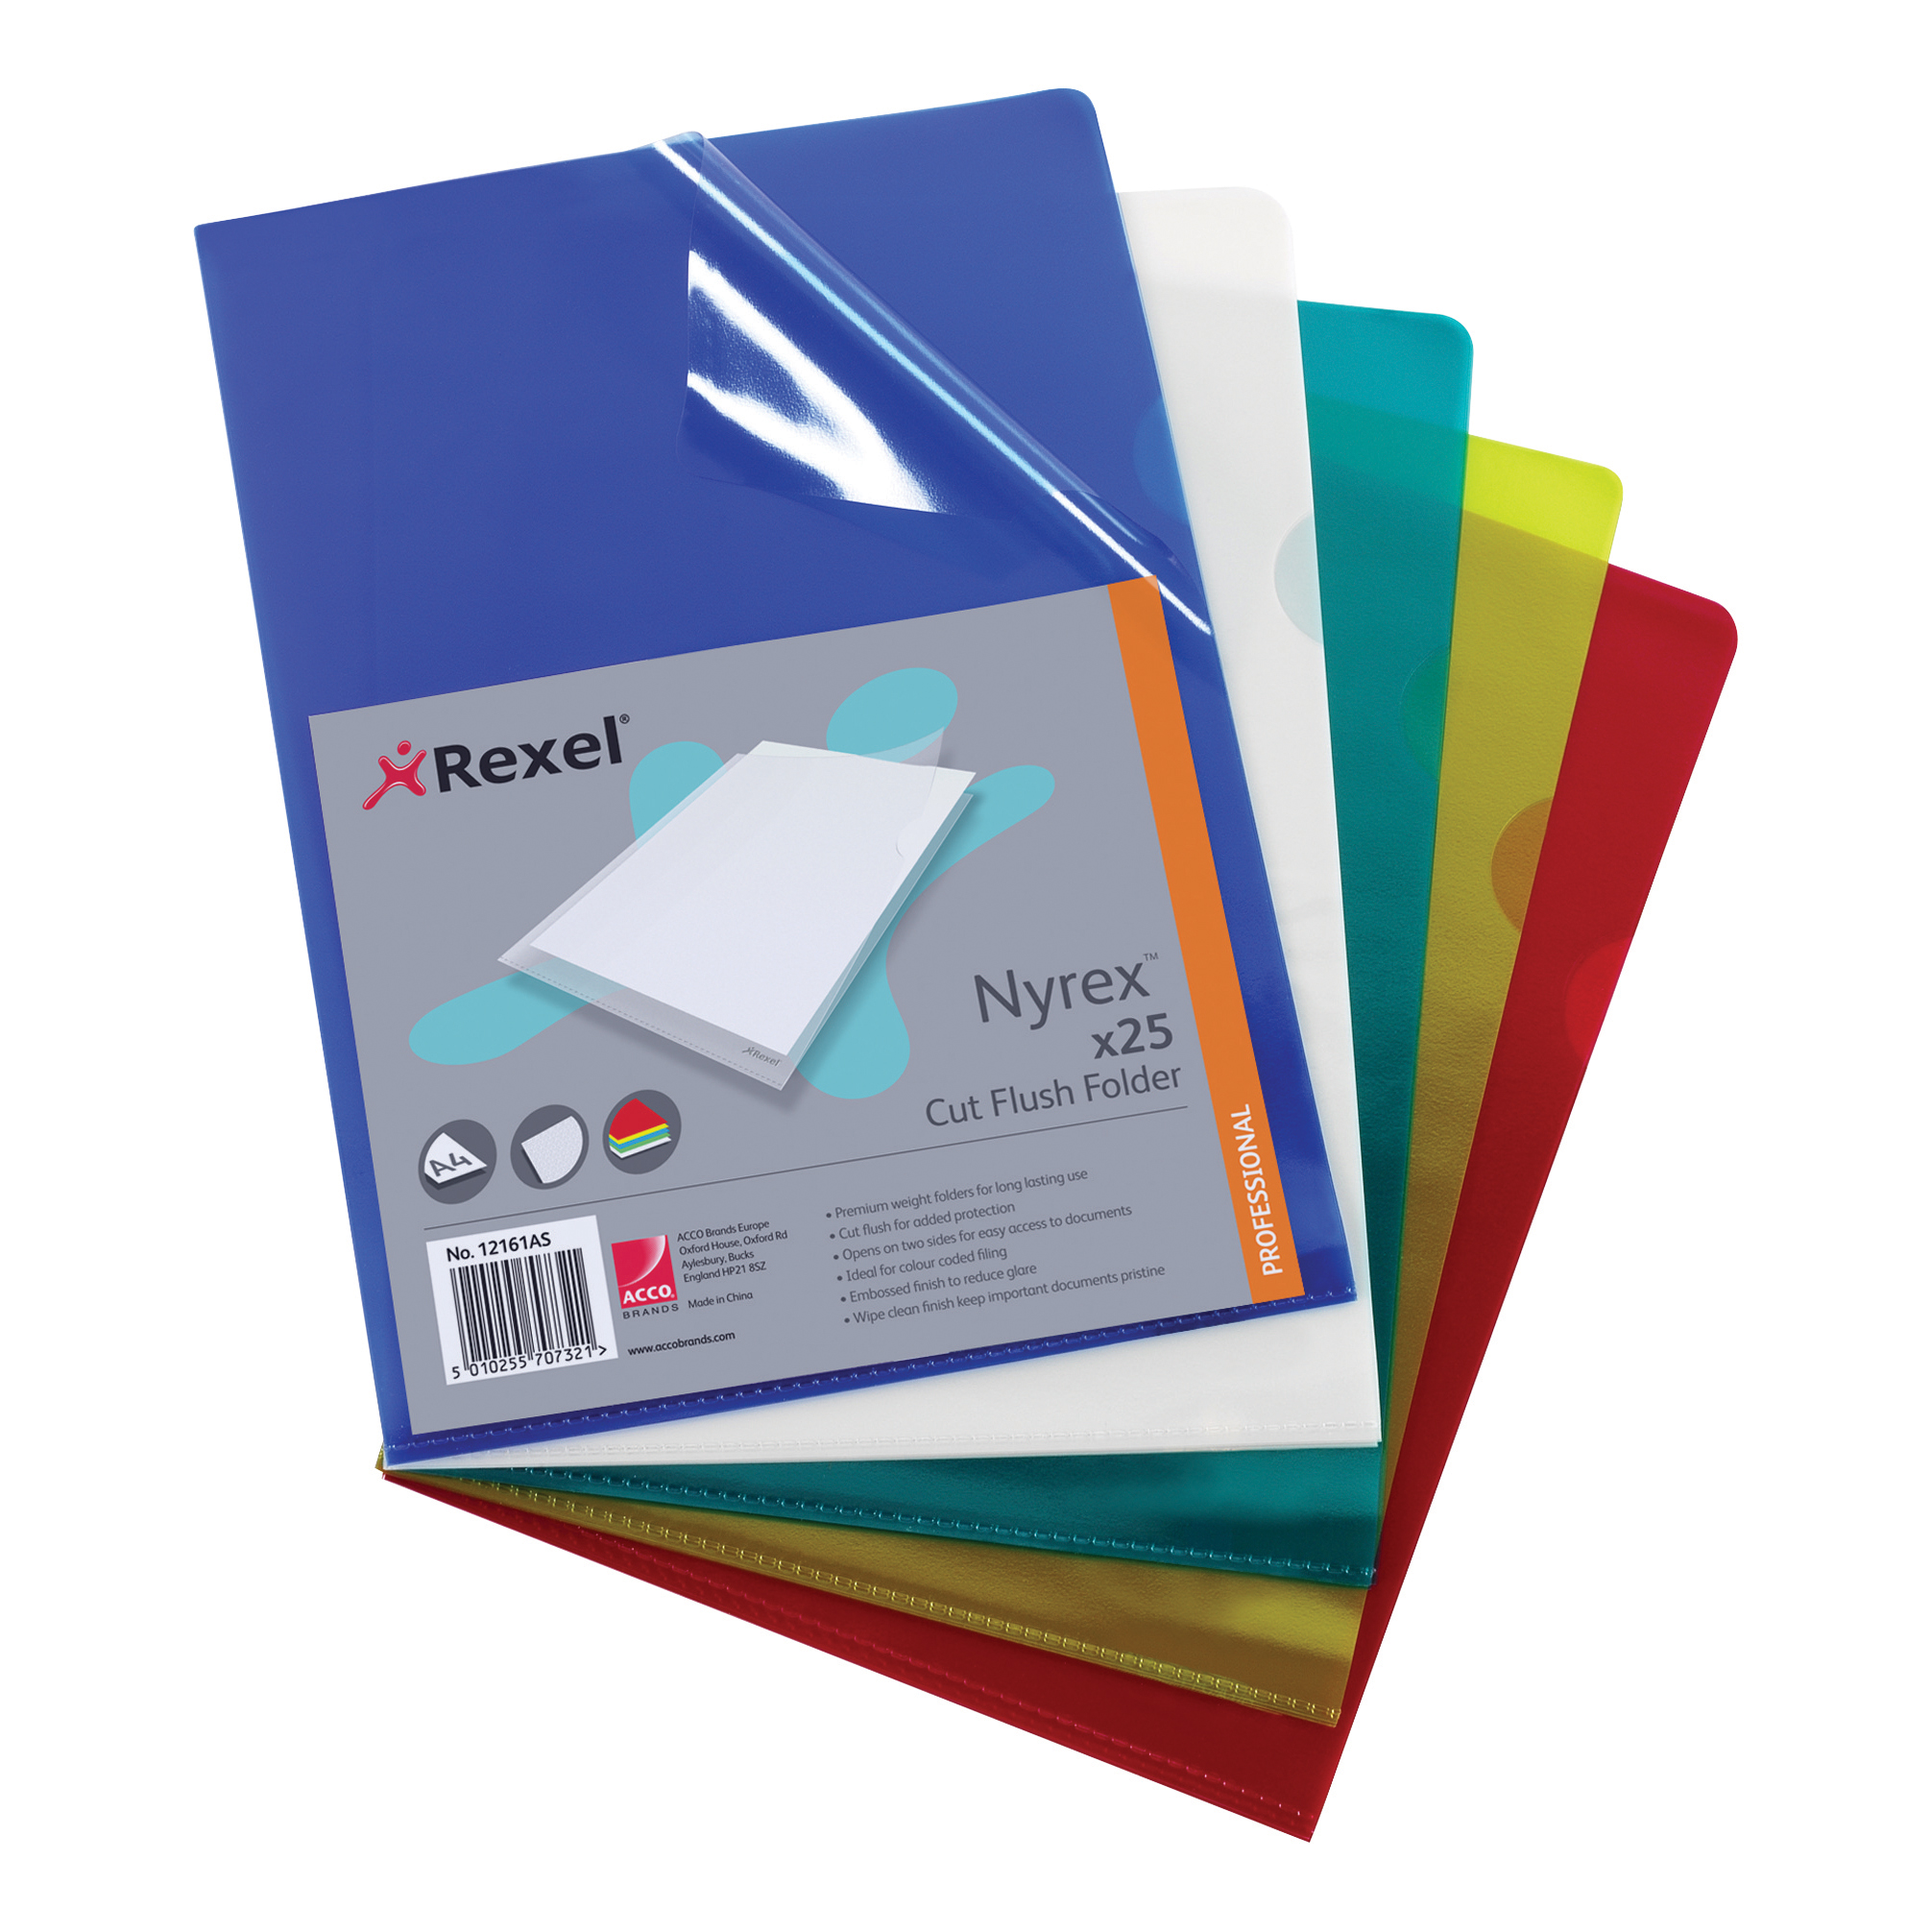 Rexel Nyrex Folder Cut Flush A4 Yellow Ref 12161YE Pack 25